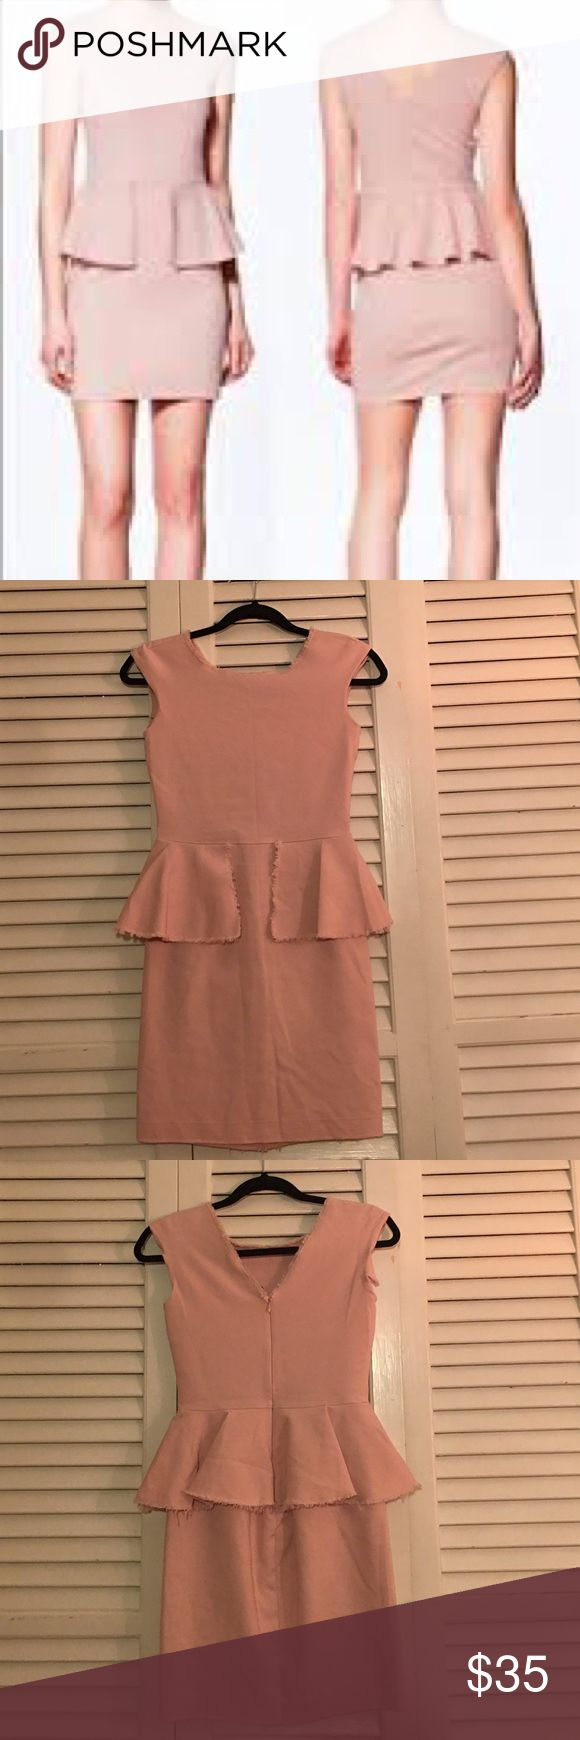 """Zara Peplum dress in blush Zara Woman peplum dress in blush. Size small. BLOGGER FAVORITE. Peplum style dress has fraying around the edges. In gently worn, preloved condition. I DO NOT MODEL LISTINGS, measurements are provided. Measurements approx. 31"""" length, 24"""" waist, 13"""" from armpit to armpit. Love the item but not the price? Please make offers using the offer button. 🚫POSH ONLY, NO TRADES OR COMMENT OFFERS🚫 Zara Dresses"""